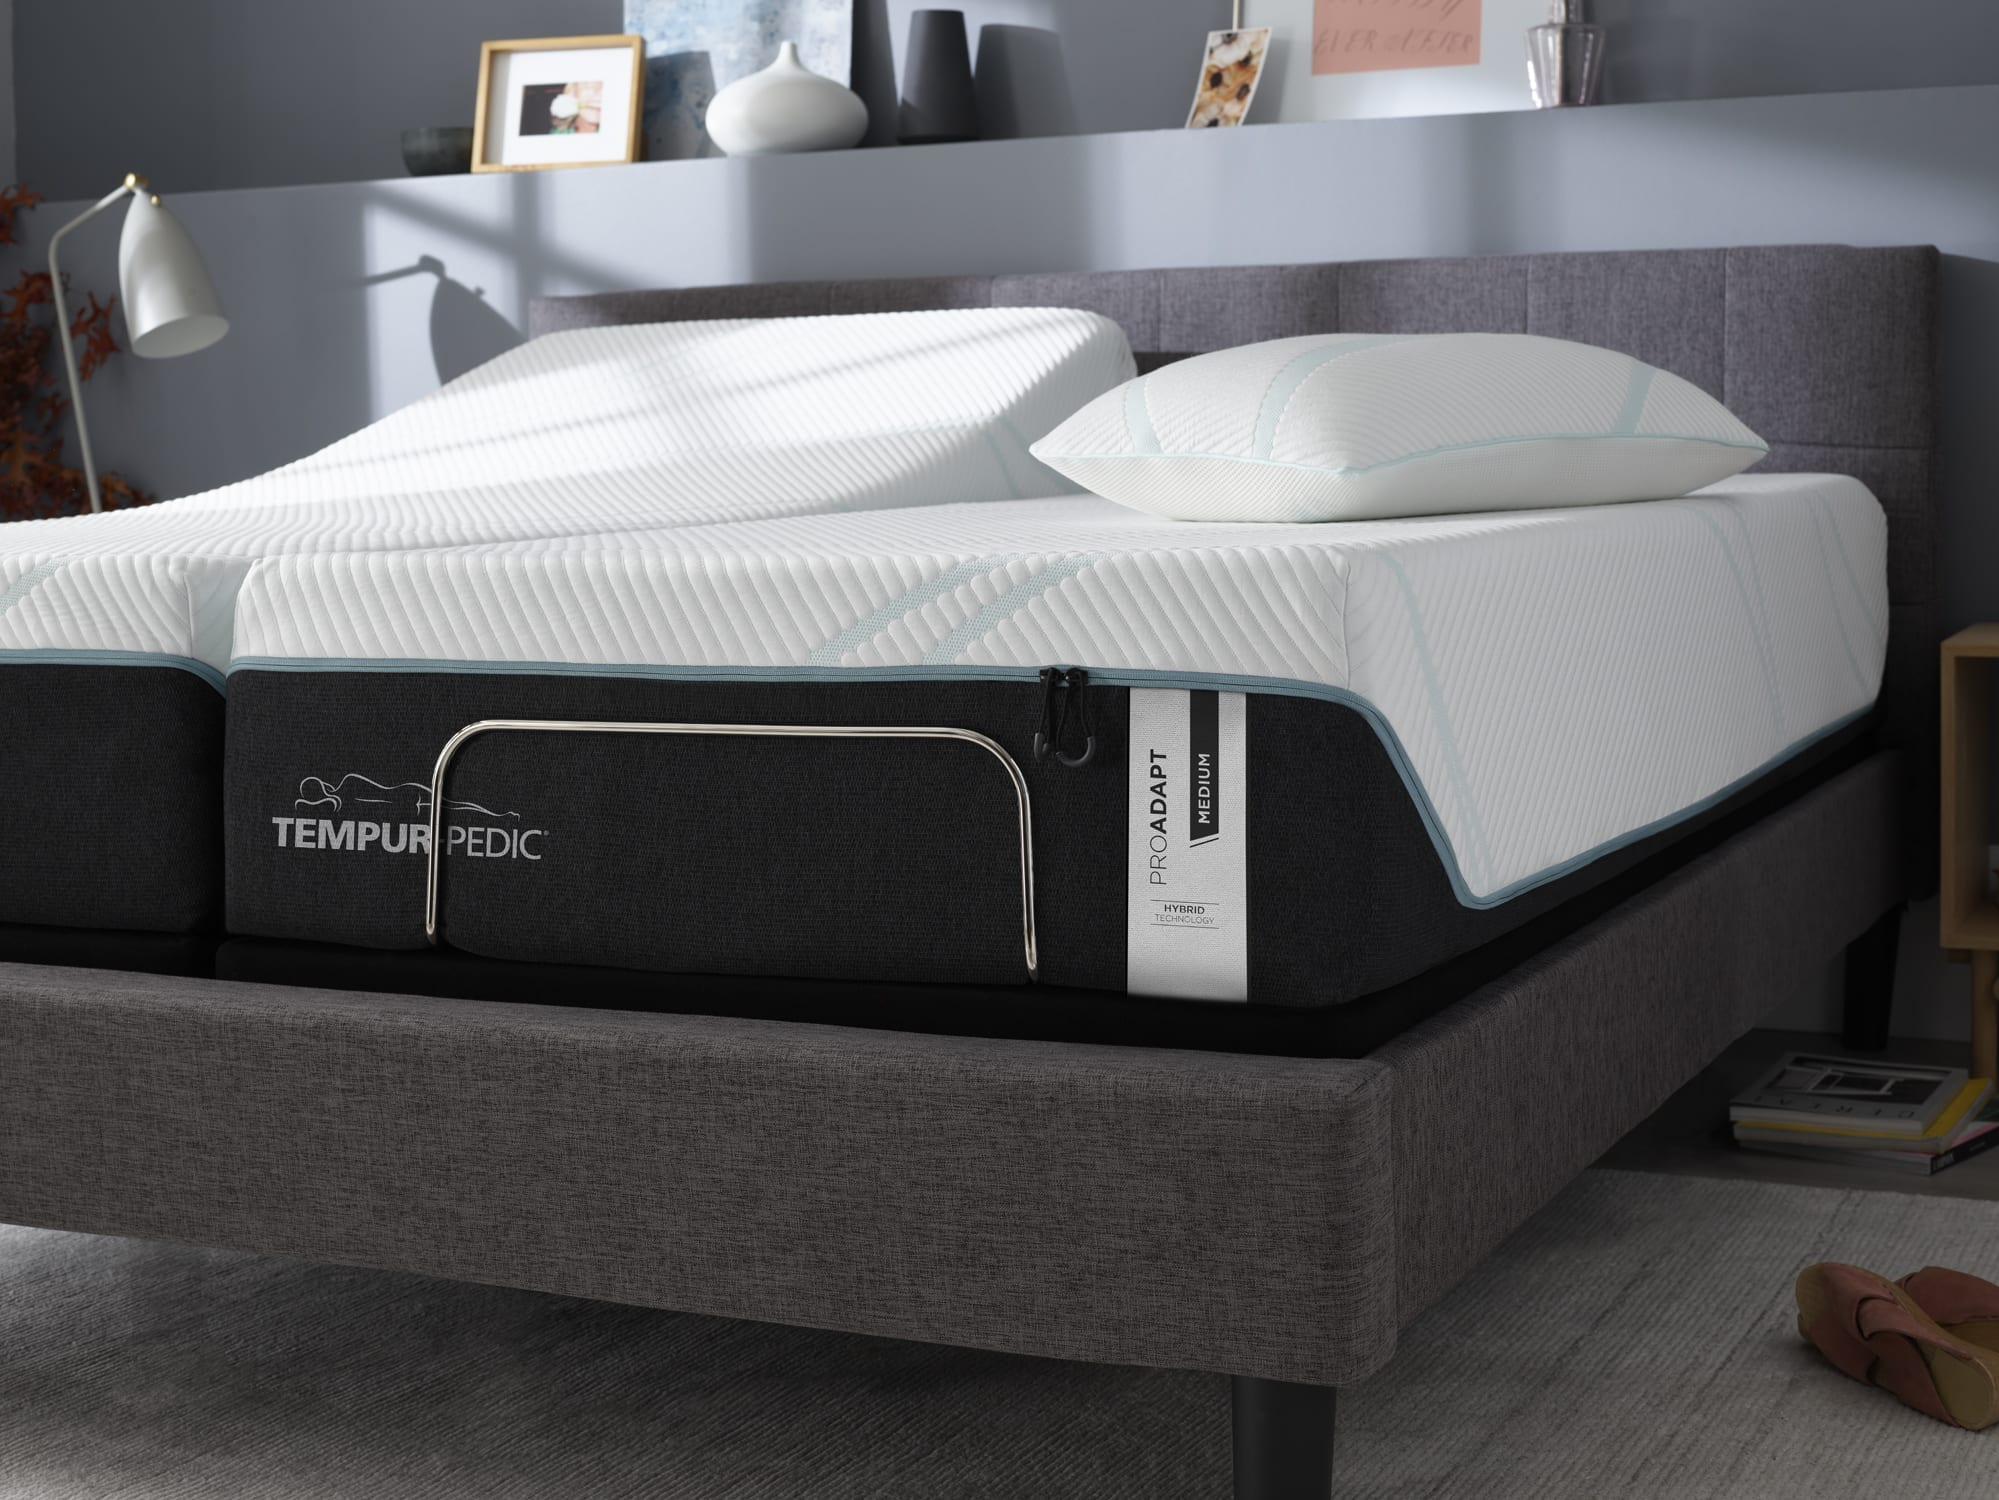 Tempur Pedic Pro Adapt Medium Hybrid Best Mattress Best